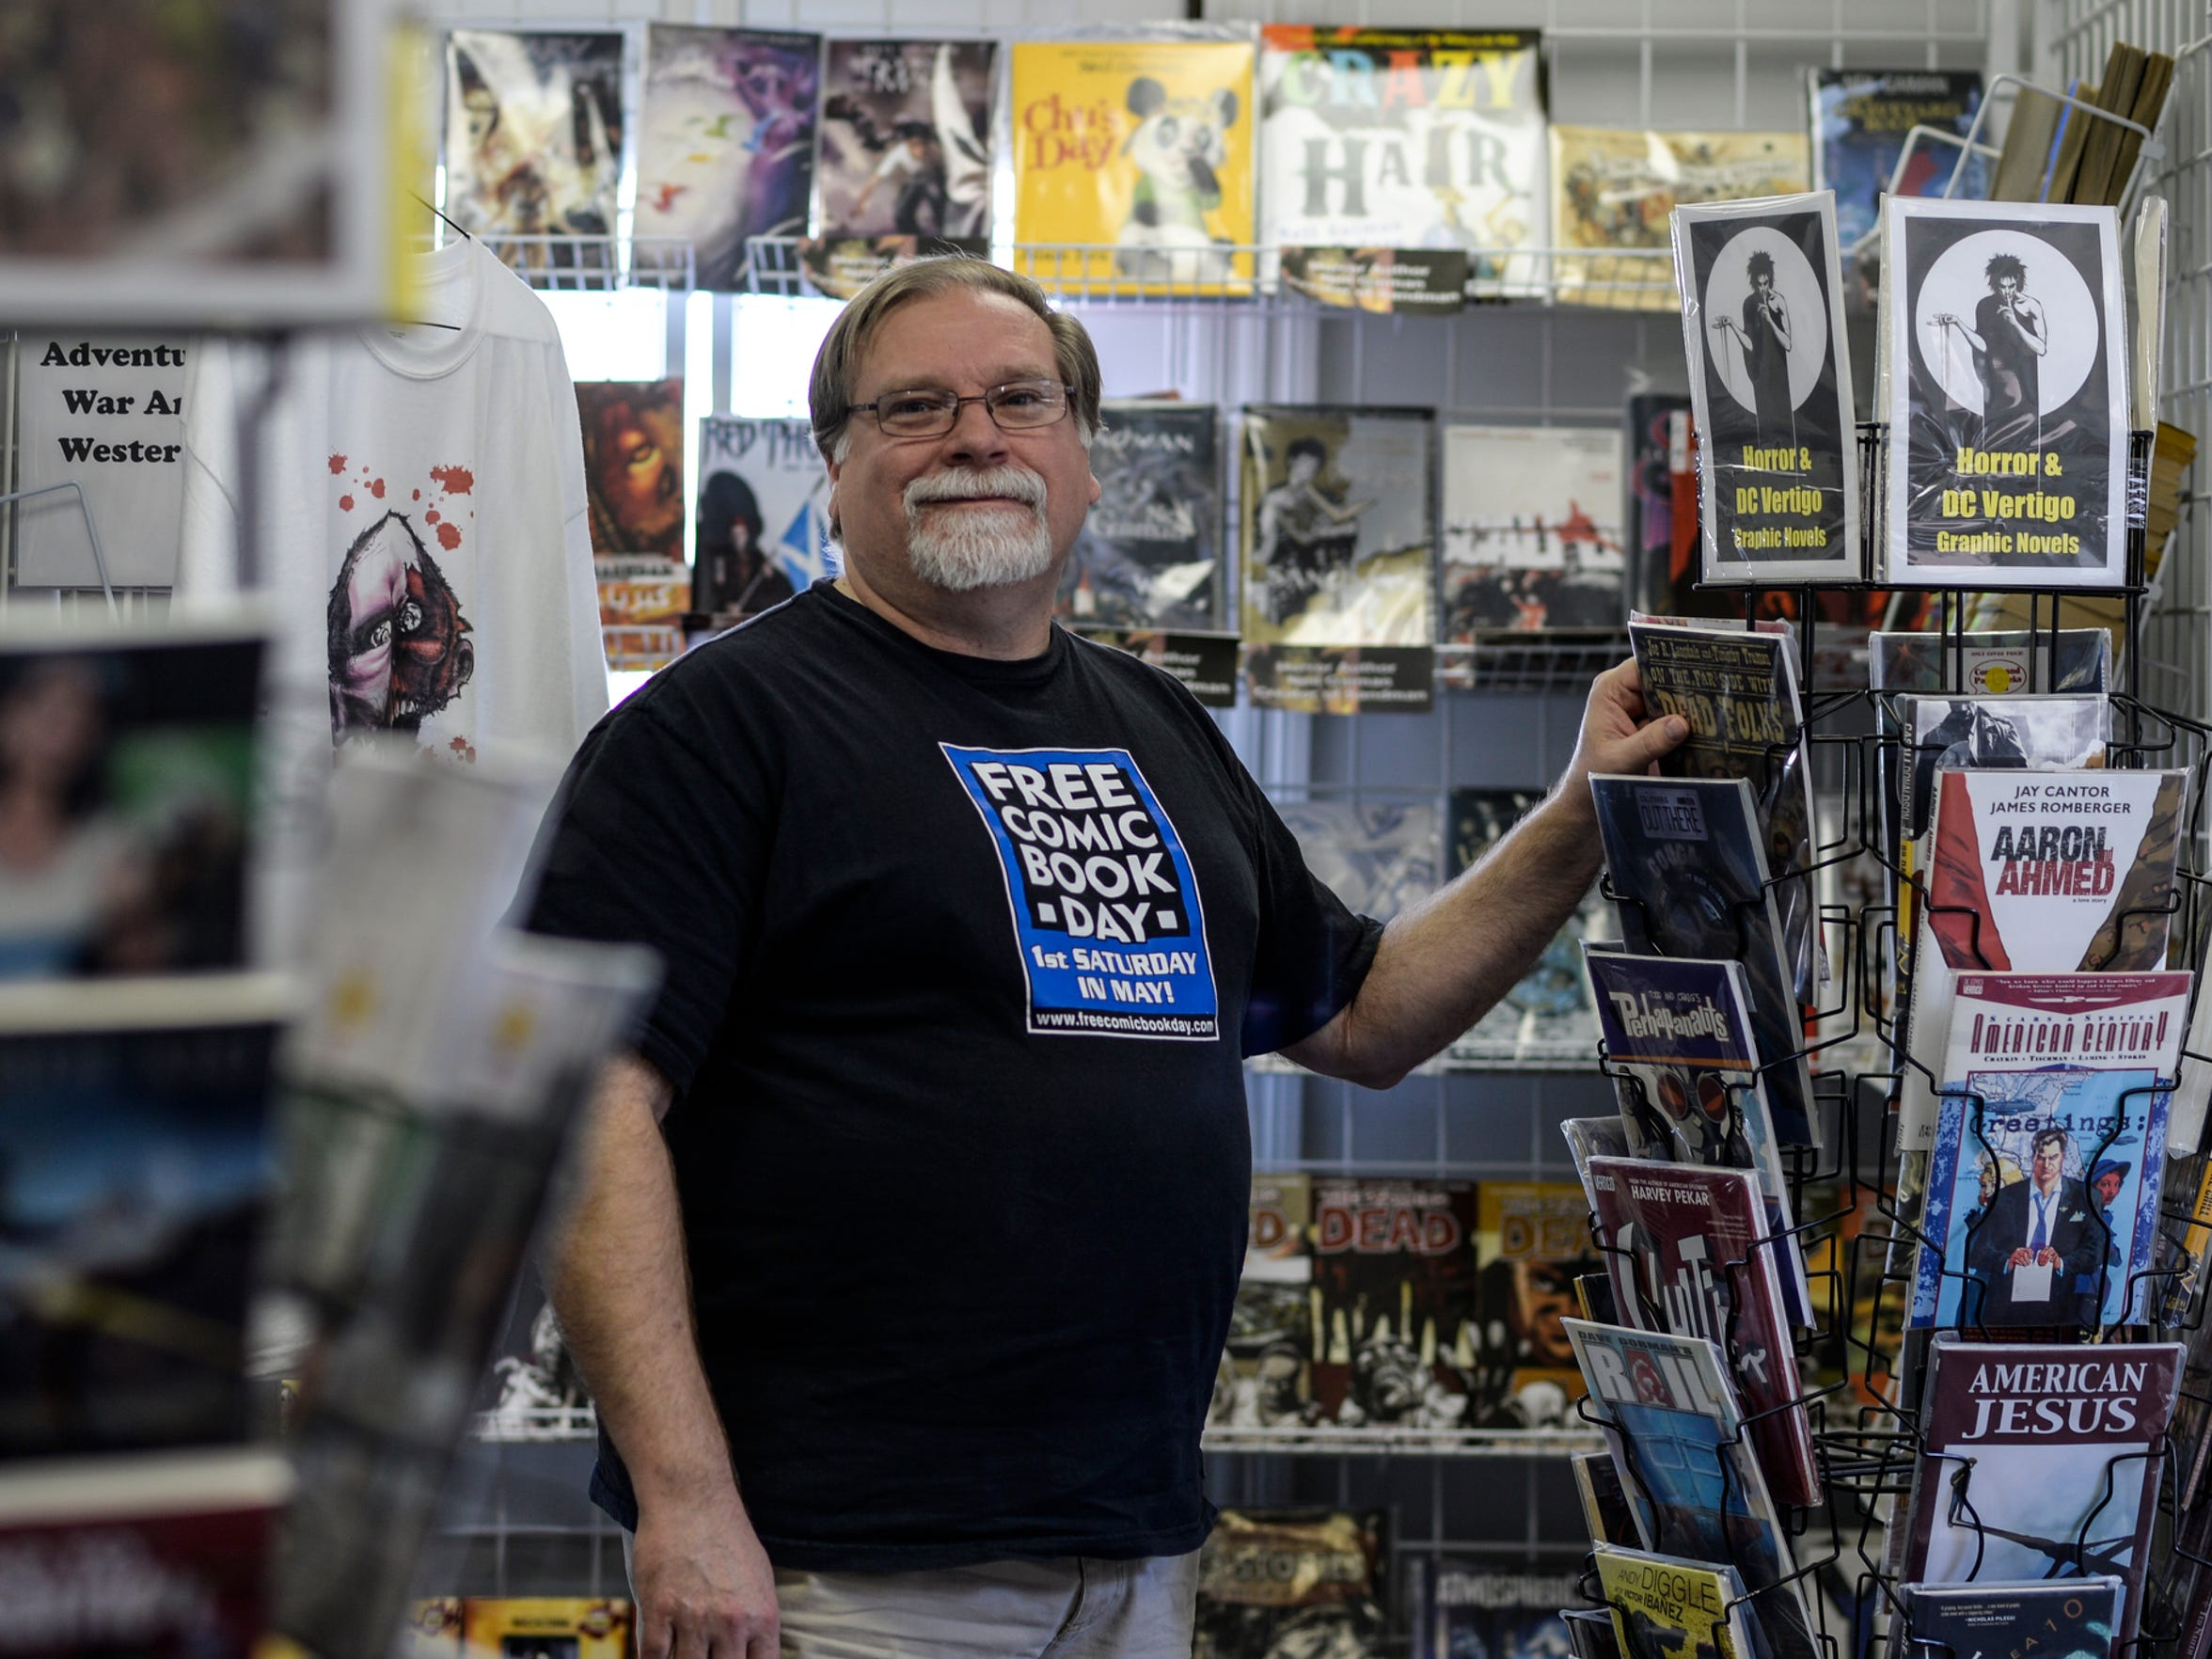 Ralph Watts, owner of Comics and Paperbacks Plus, poses for a photo at Comics and Paperbacks Plus in Palmyra.